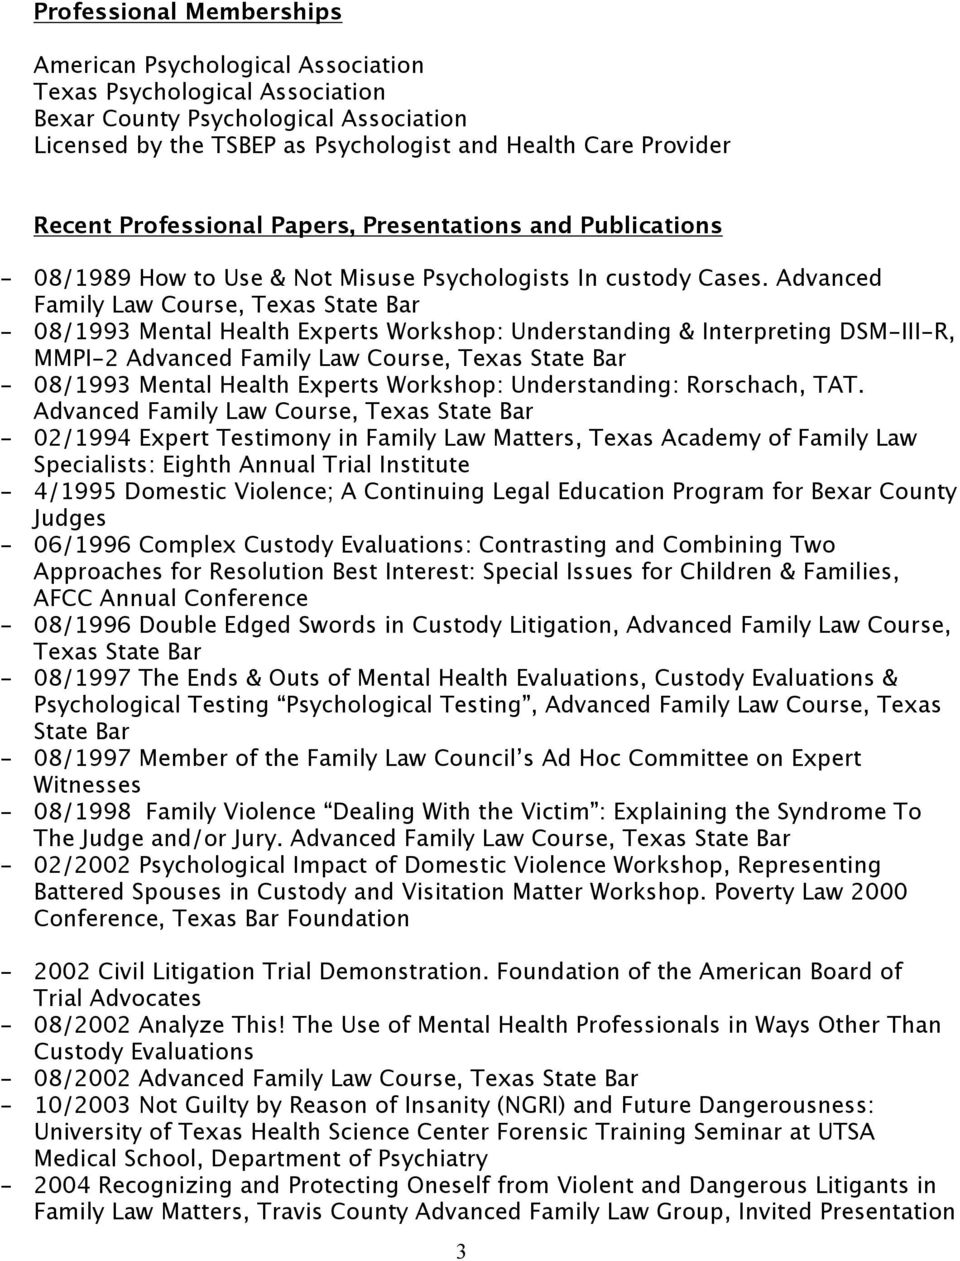 Advanced Family Law Course, Texas State Bar - 08/1993 Mental Health Experts Workshop: Understanding & Interpreting DSM-III-R, MMPI-2 Advanced Family Law Course, Texas State Bar - 08/1993 Mental